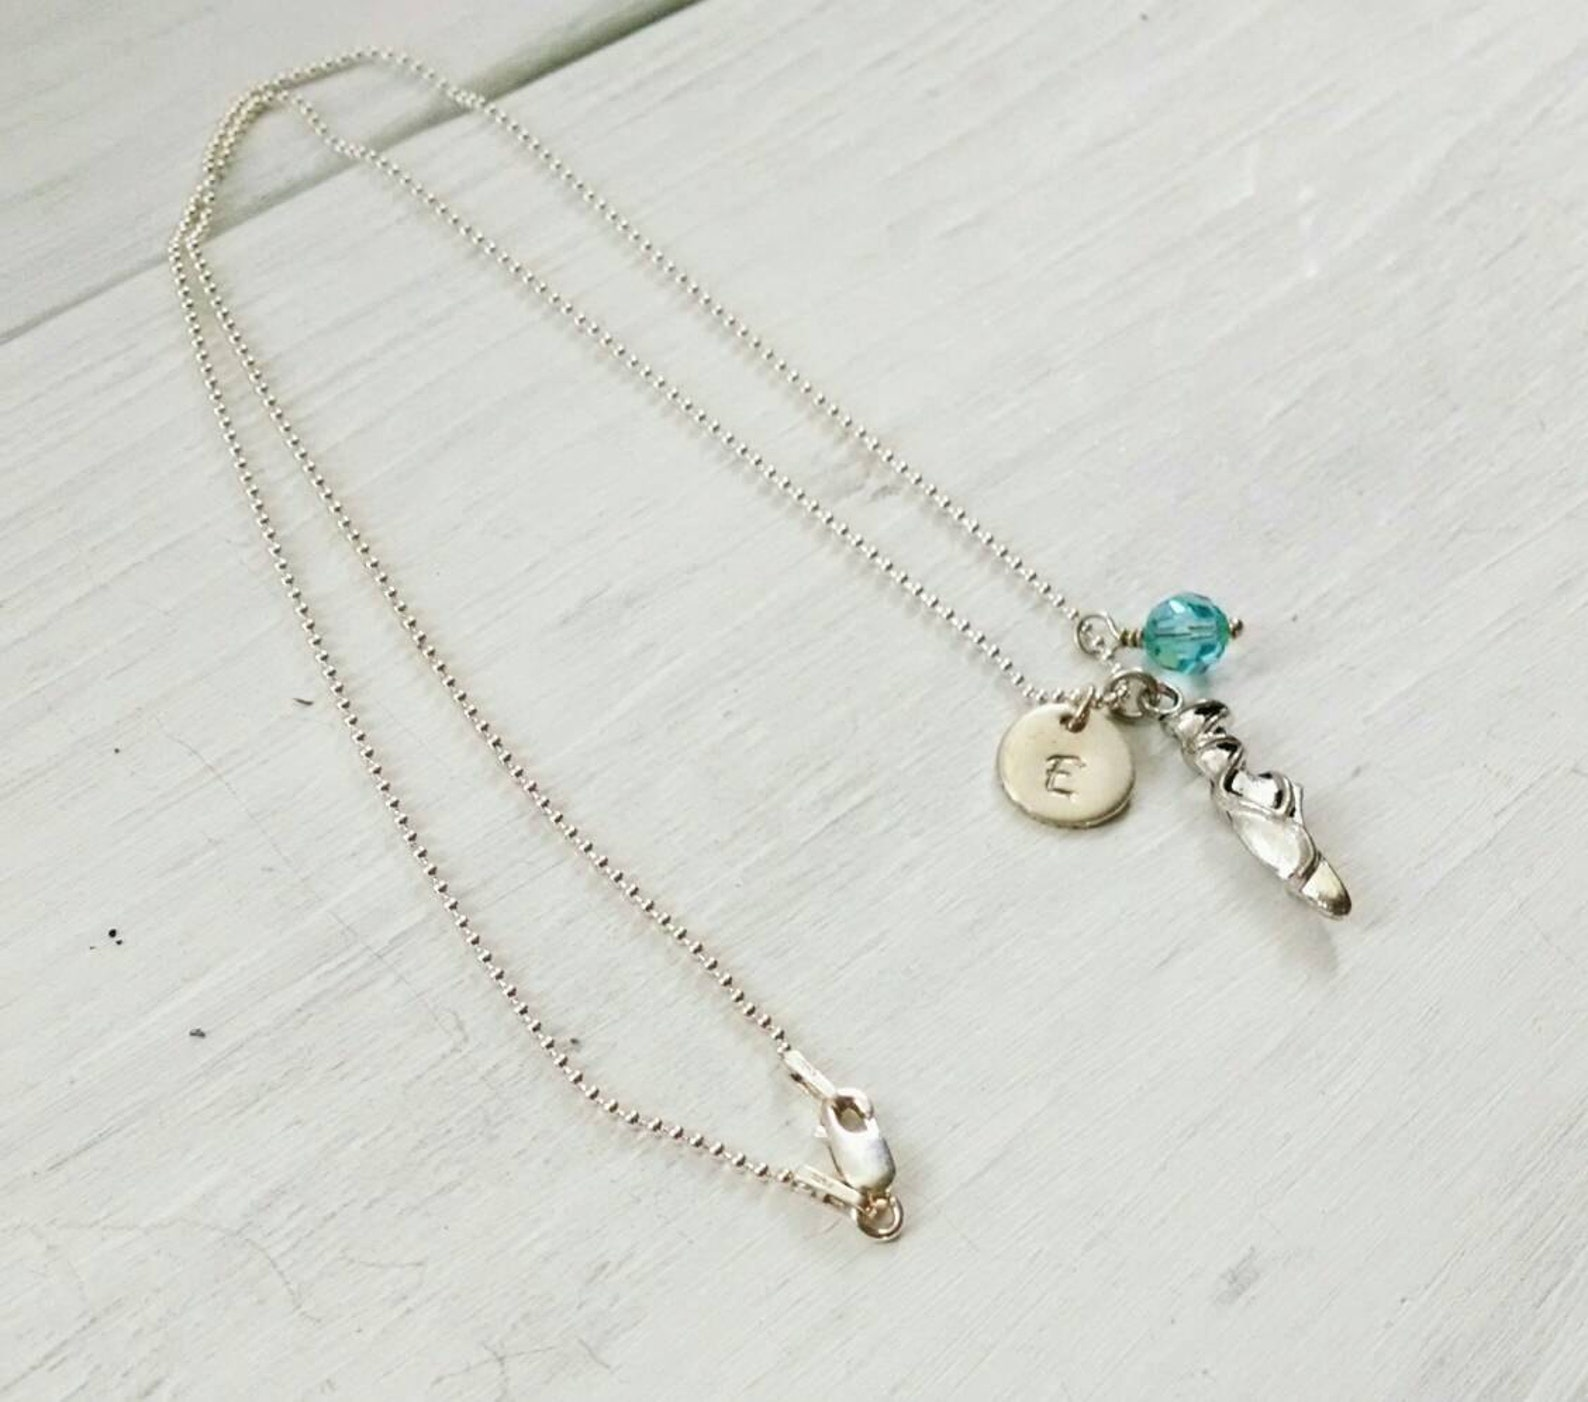 ballet slipper initial necklace - personalized gift for dance teacher - dance competition - ballerina birthday gift for dancing